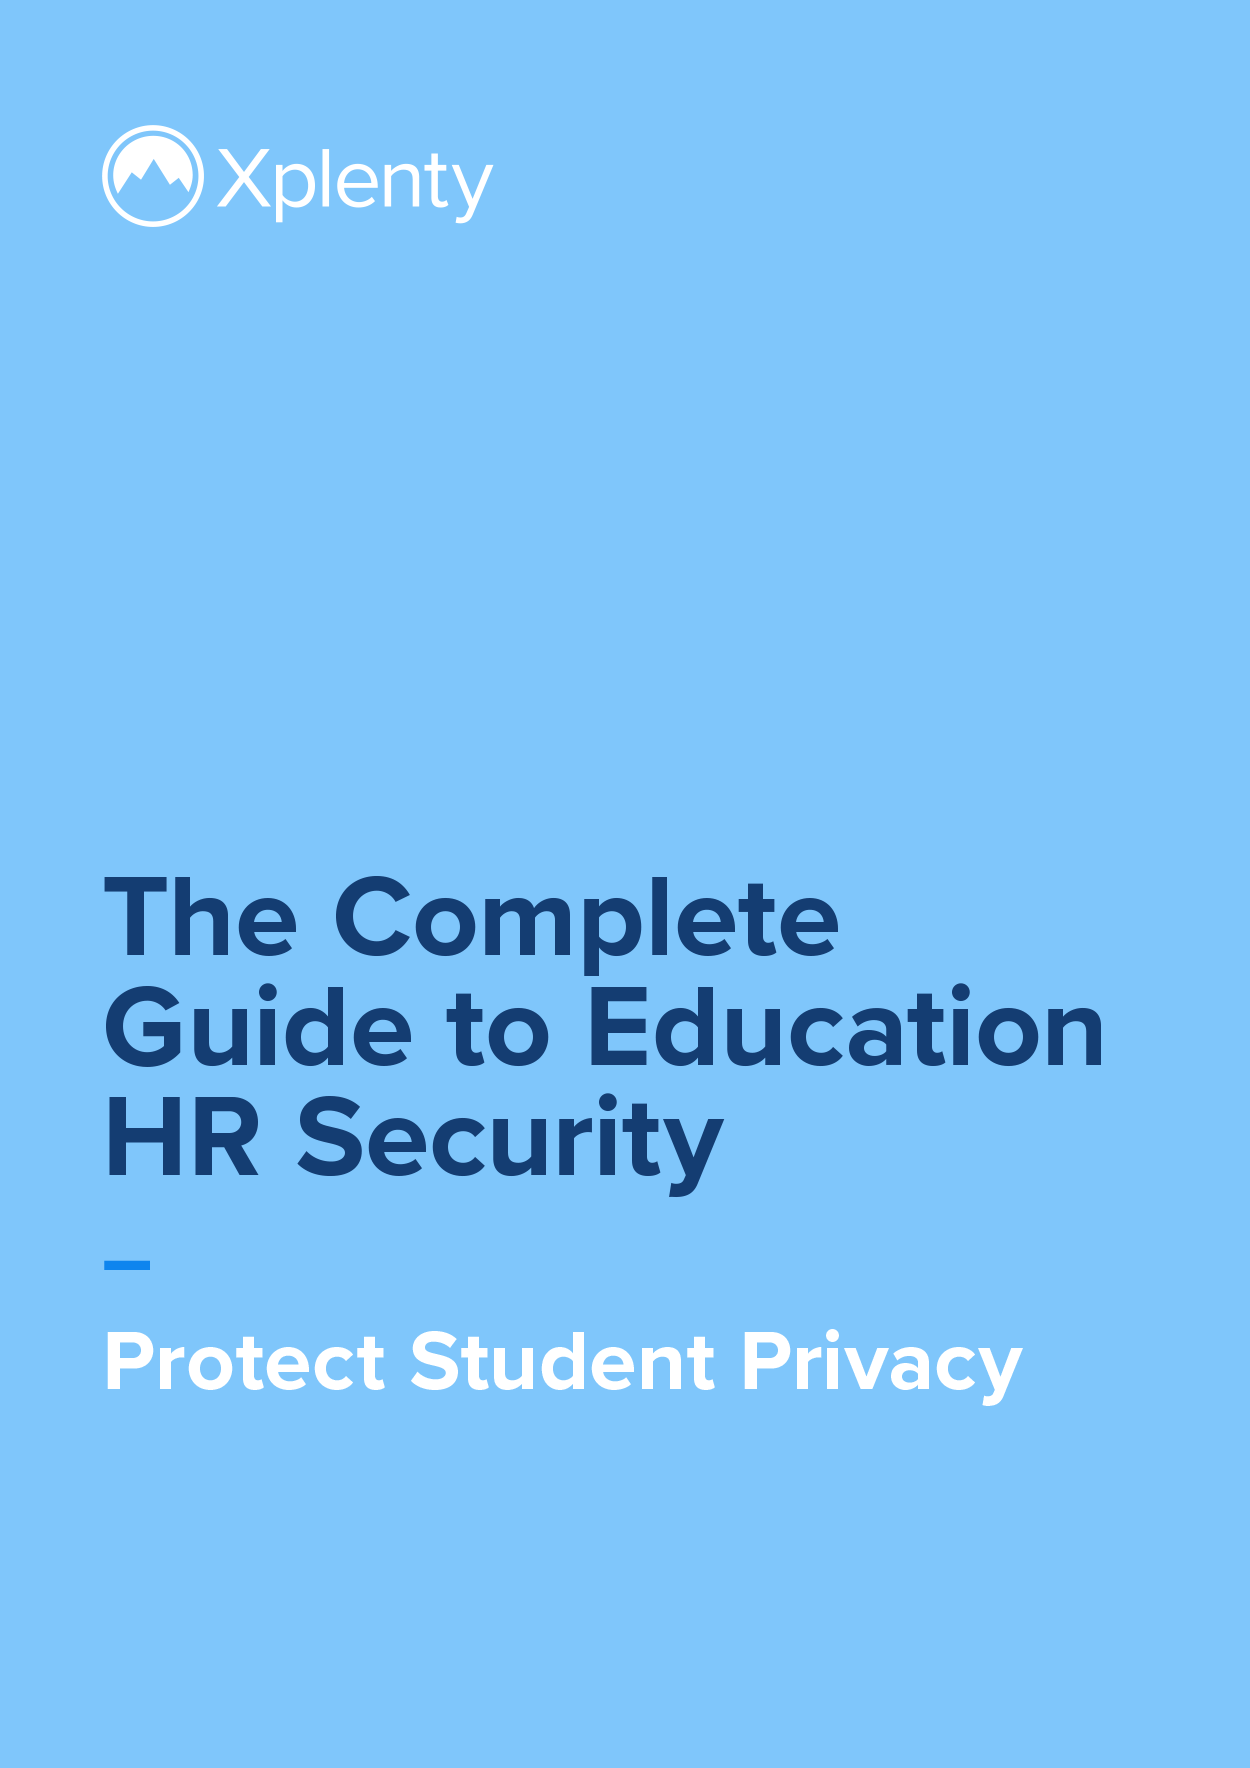 The Complete Guide to Education HR Security